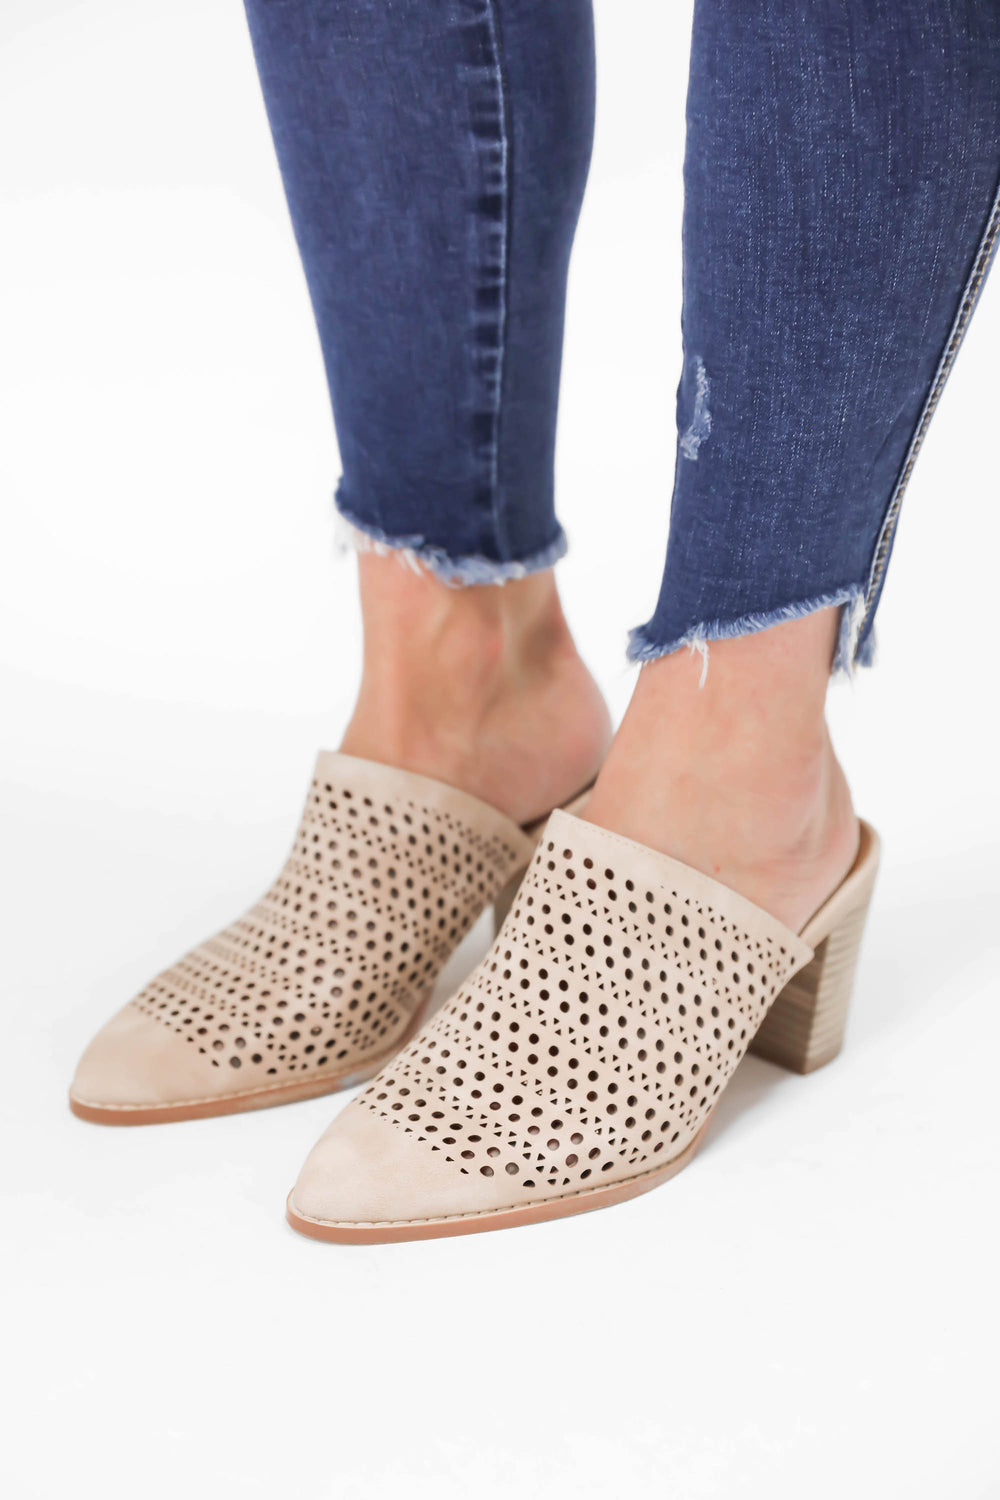 Step Aside Slip On Heeled Mules